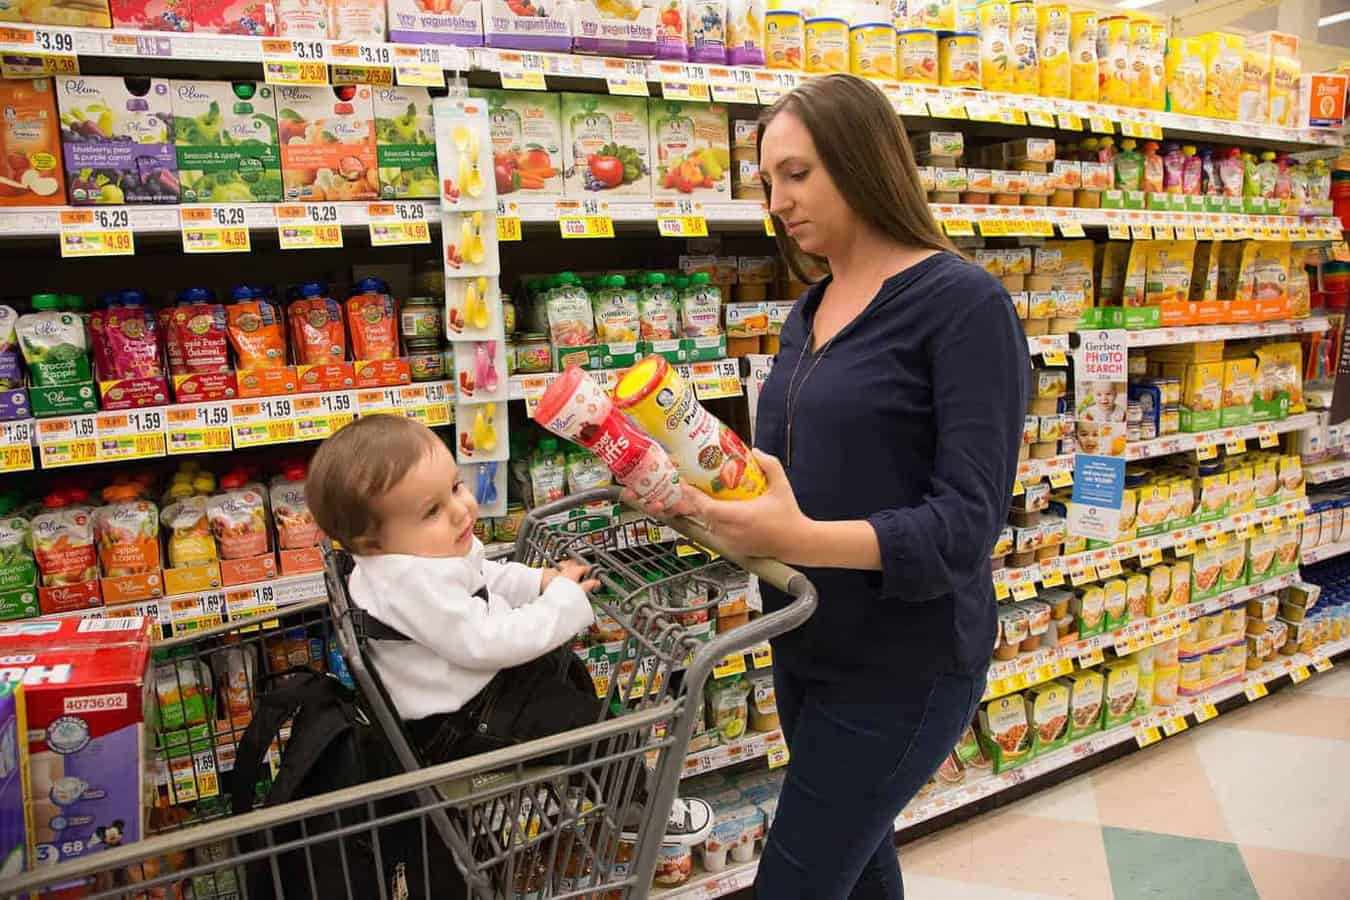 Baby Food Marketing Often Contradicts Expert Advice